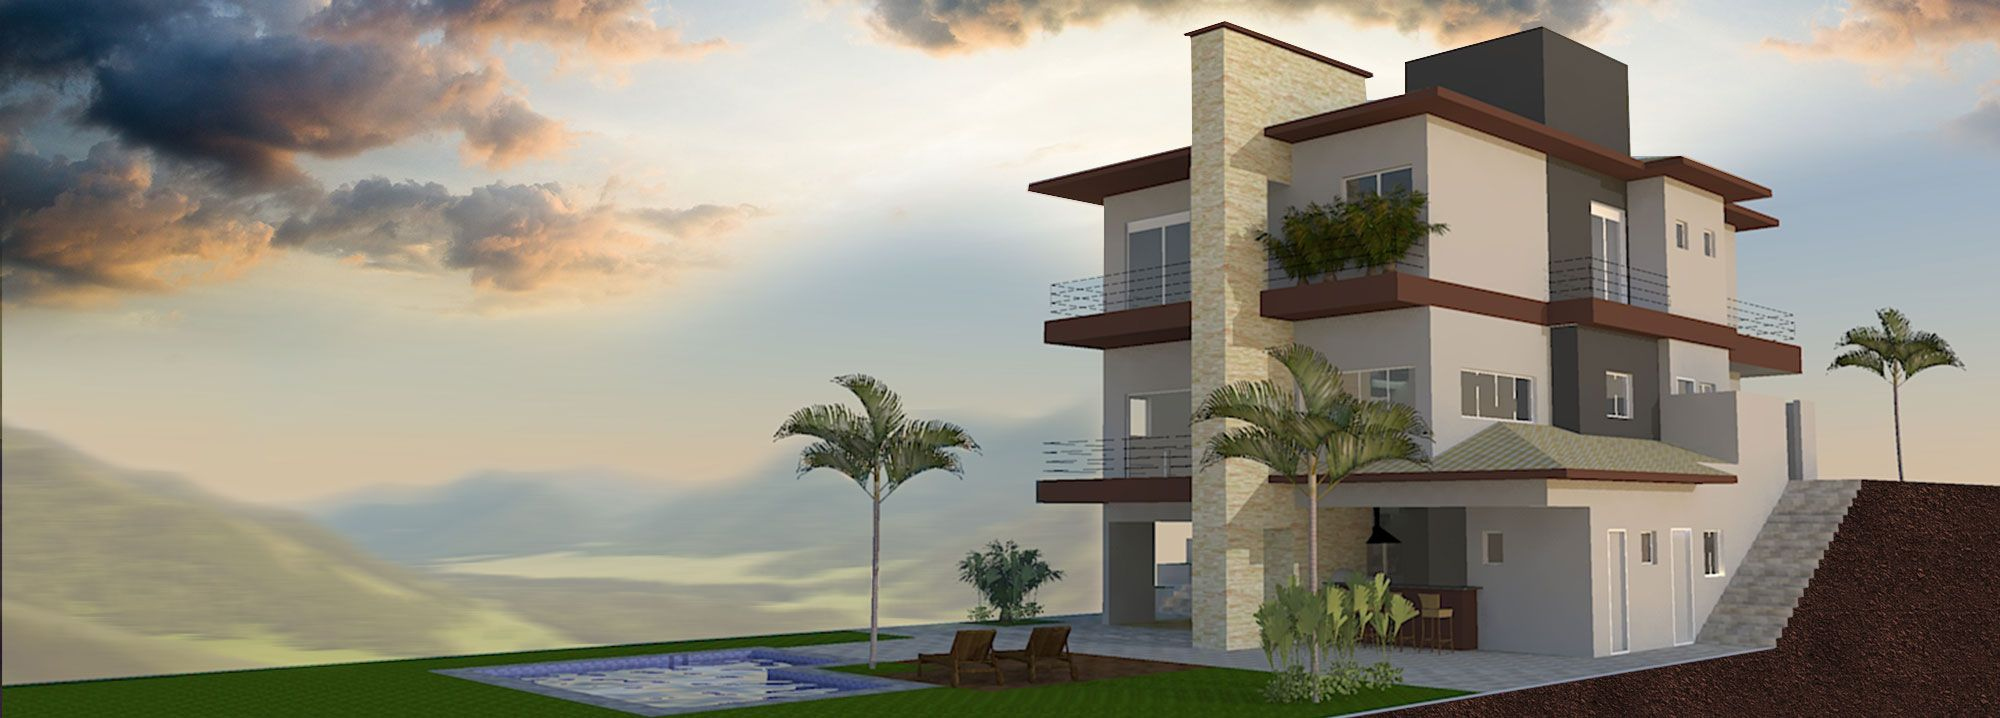 Projeto Residencial - 417,56 m²